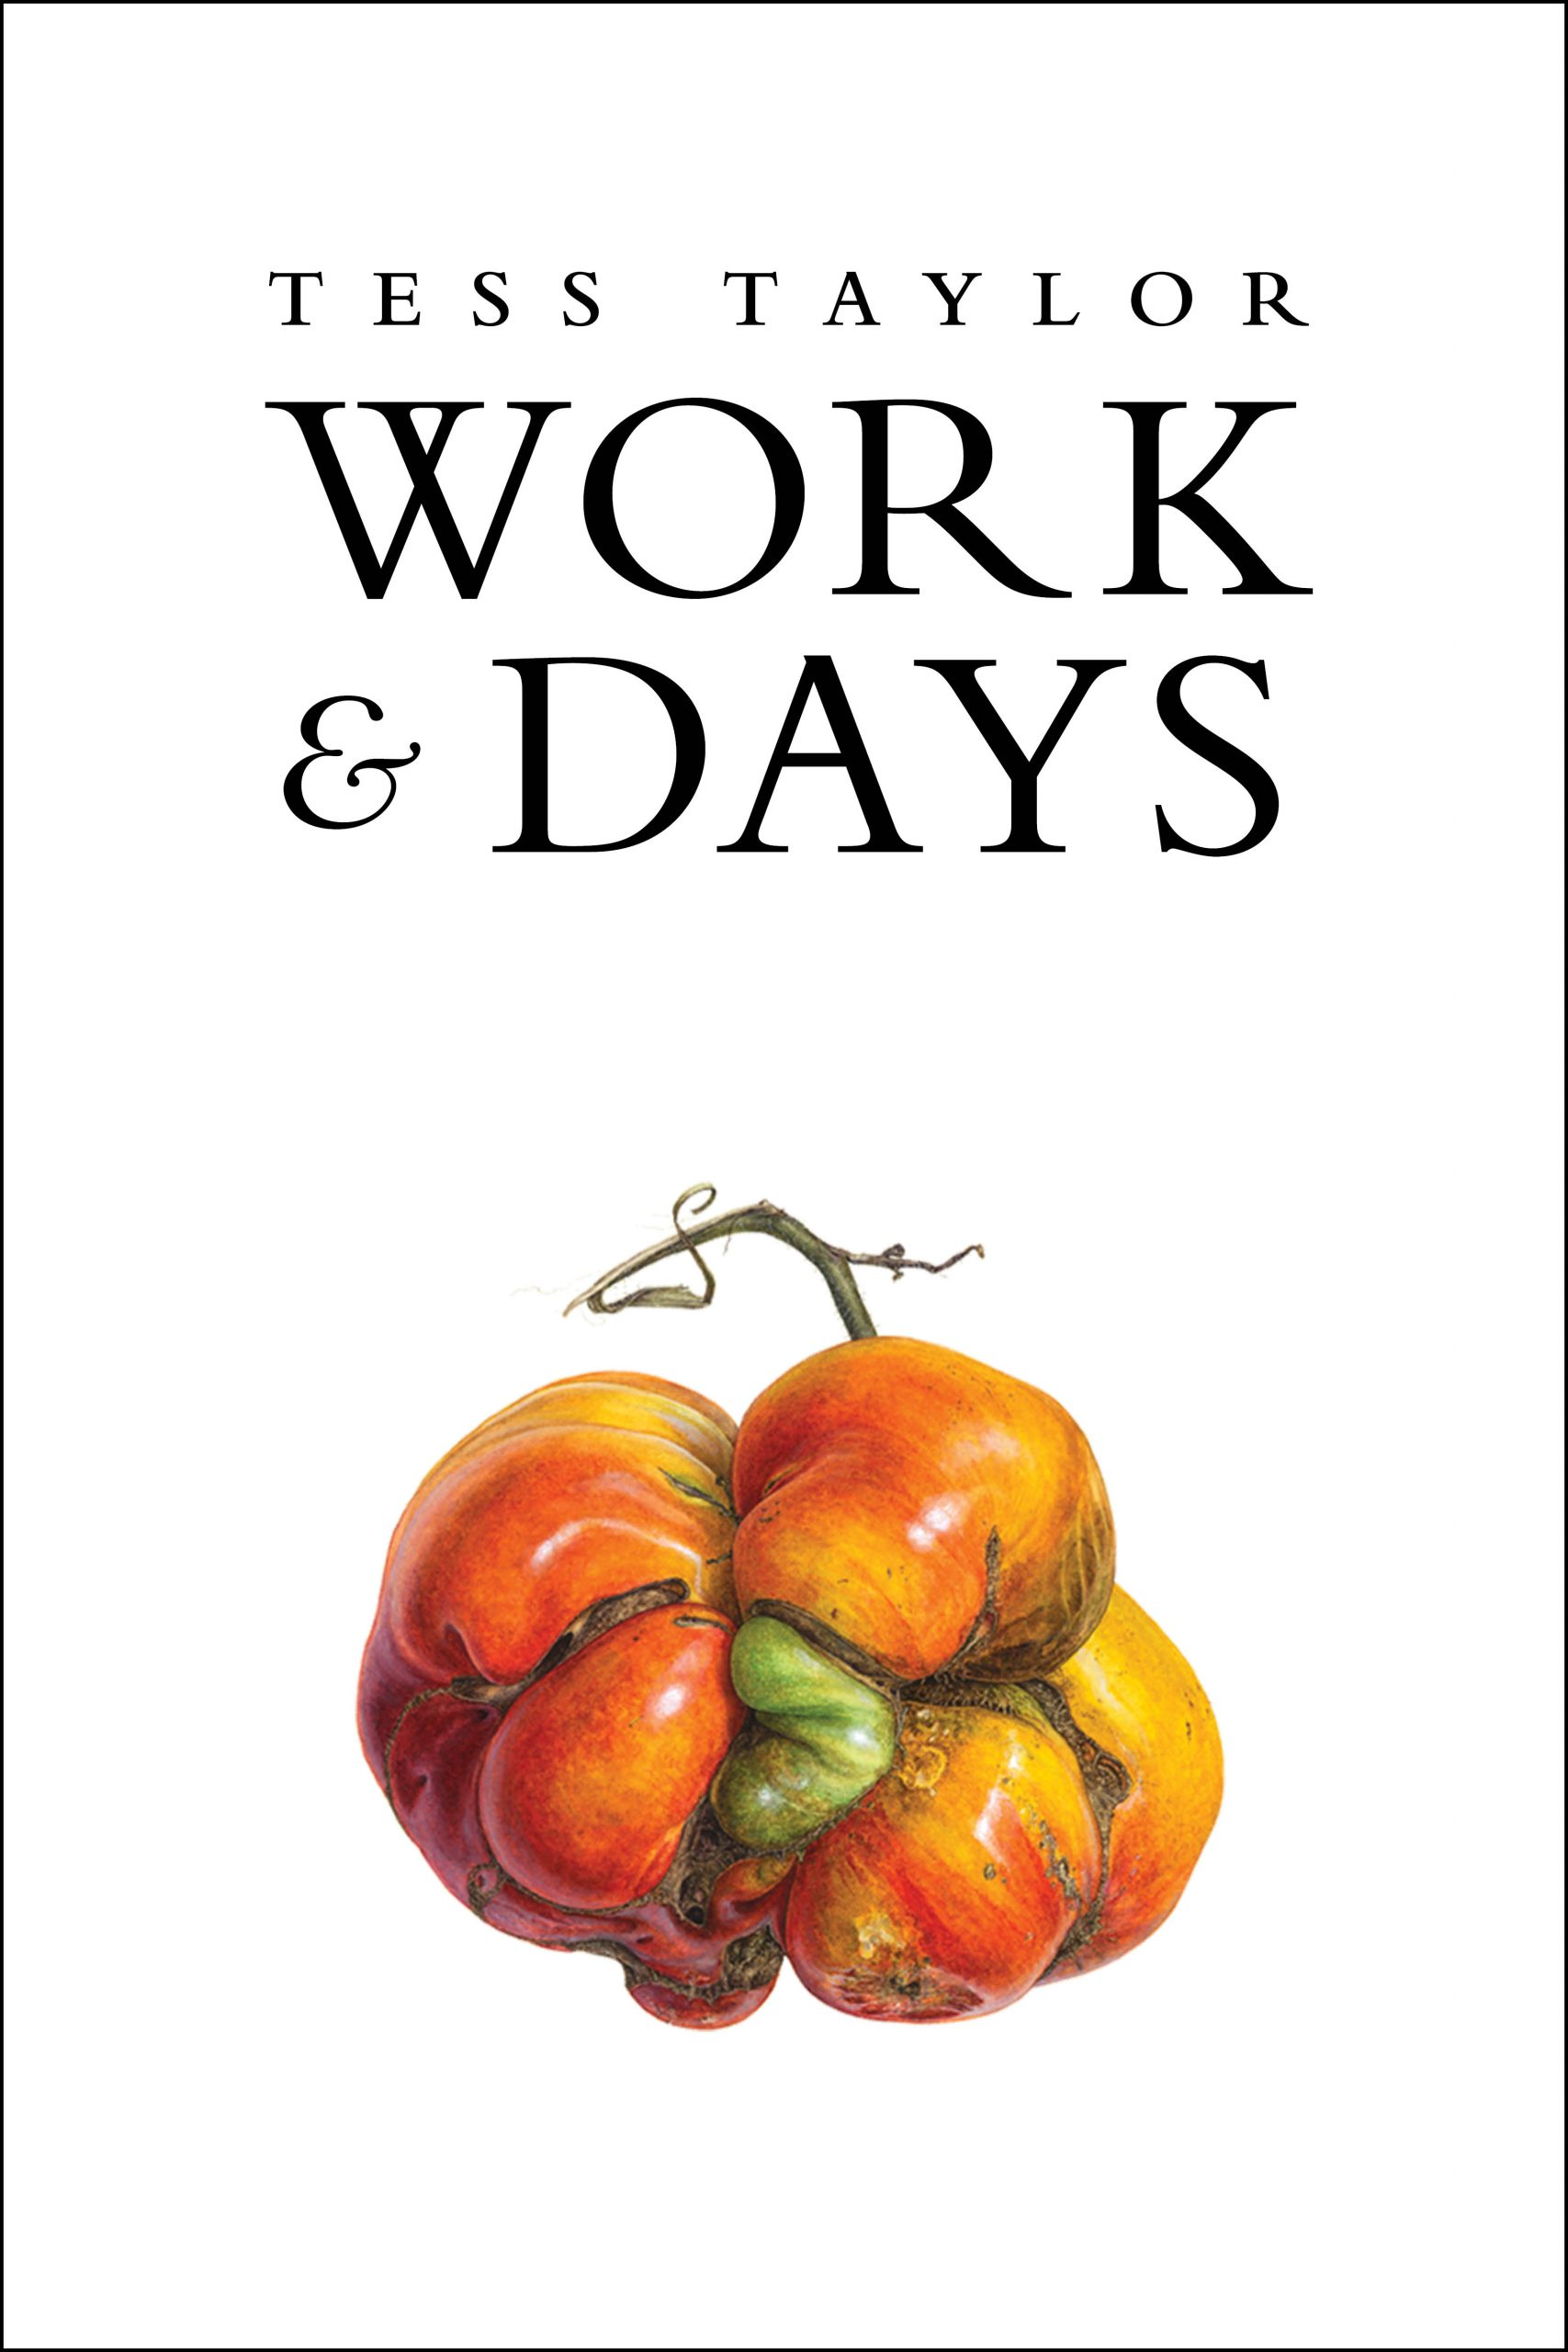 Black lettering over a white background reads Work & Days by Tess Taylor over the image of a twisted and mangled red tomato.